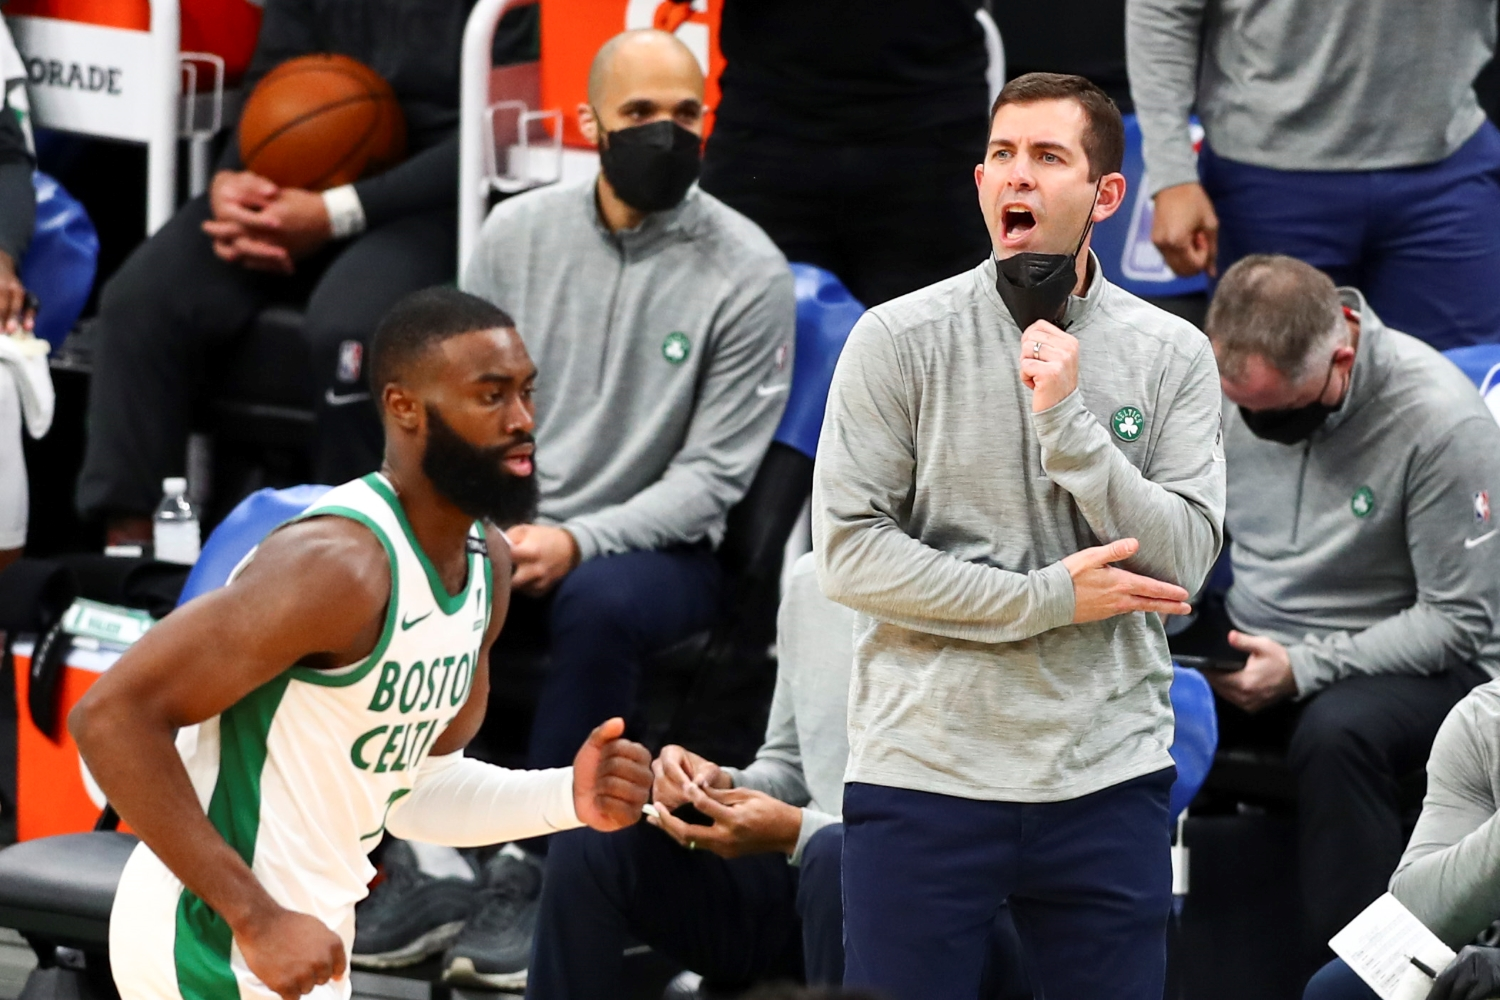 Head Coach Brad Stevens of the Boston Celtics lowers his mask to speak during a game against the Los Angeles Clippers at TD Garden on March 2, 2021.